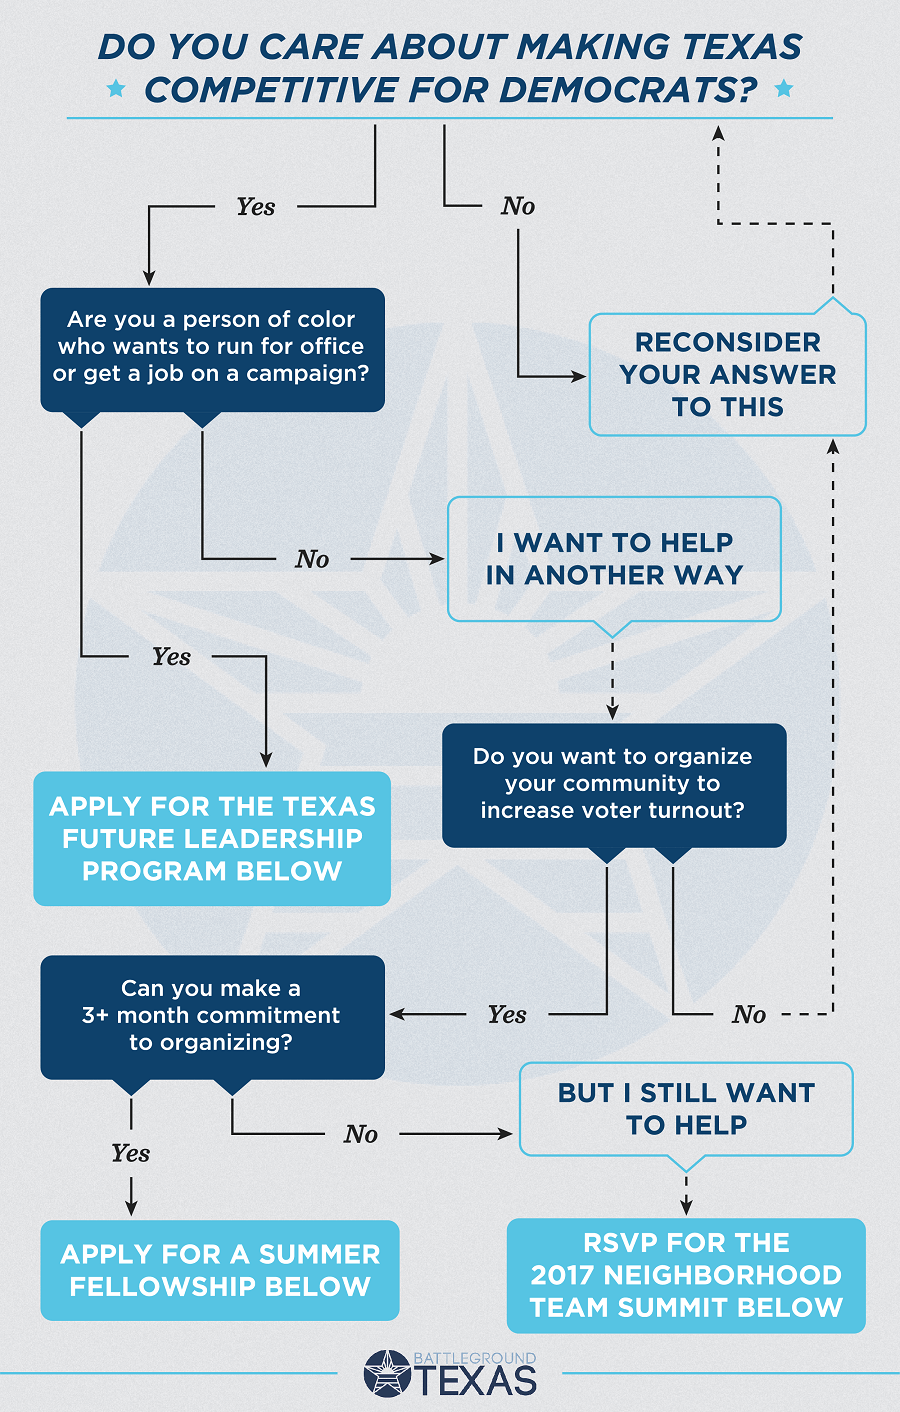 Do you care about making Texas competitive for Democrats?